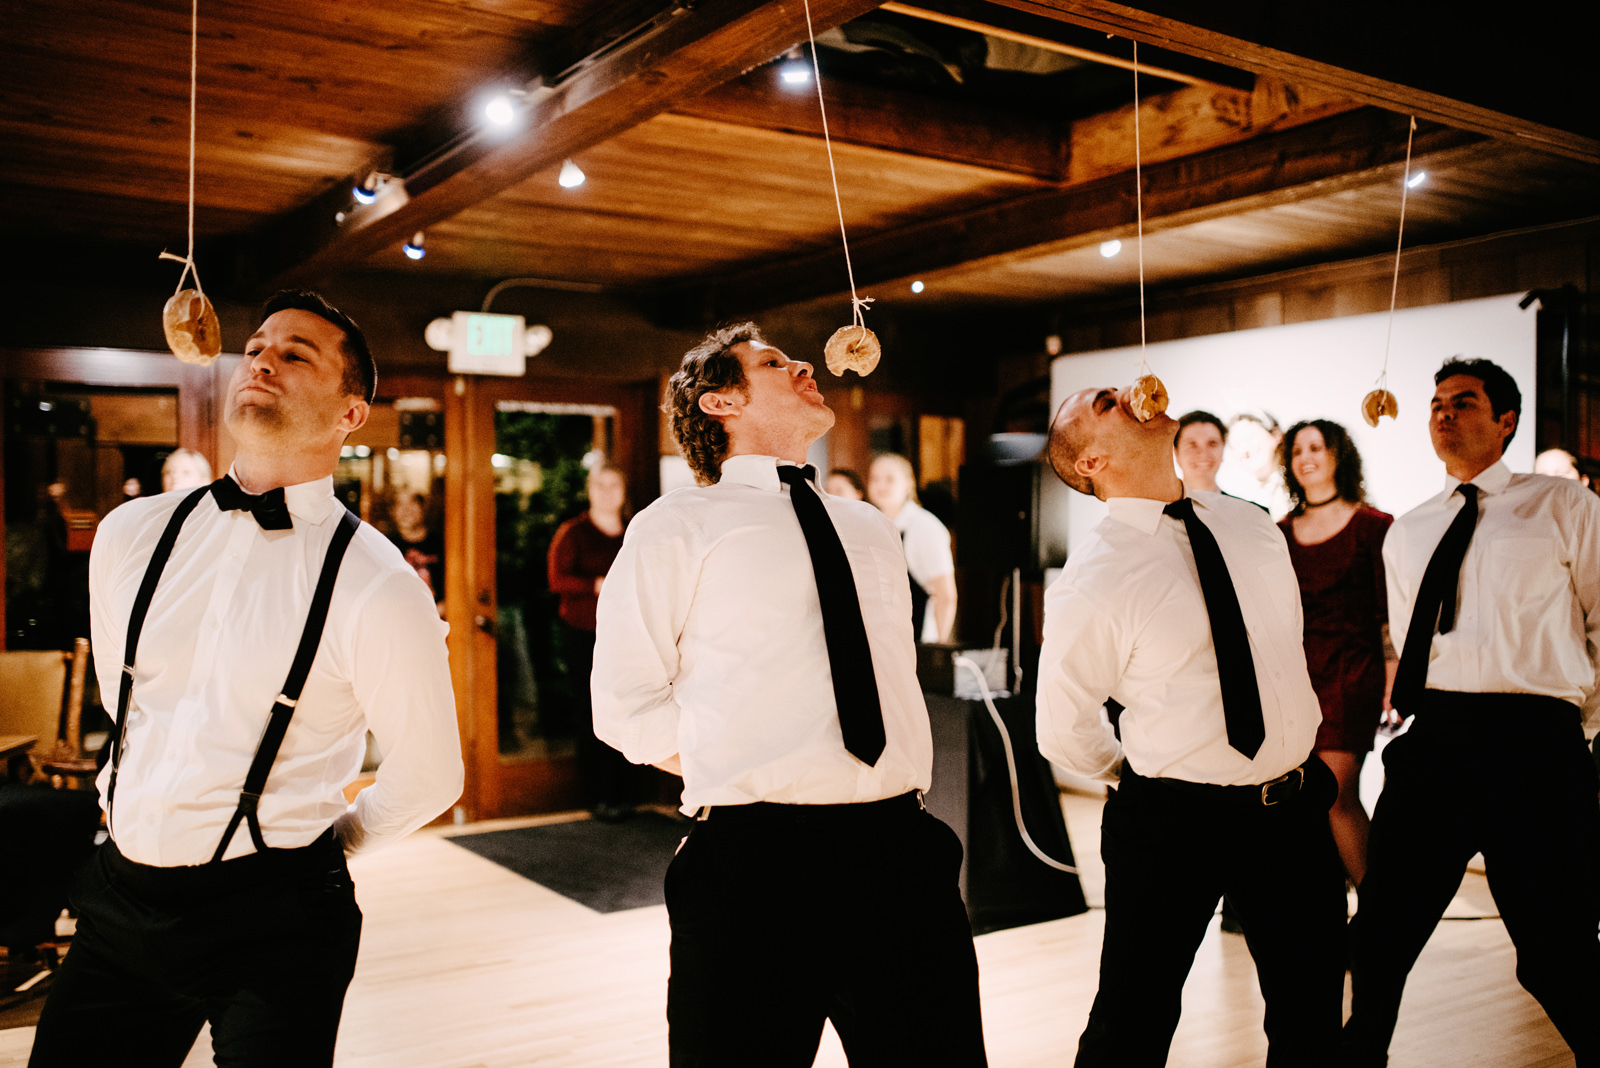 050-hilarious-wedding-game-of-donut-eating-contest-at-kiana-lodge.jpg